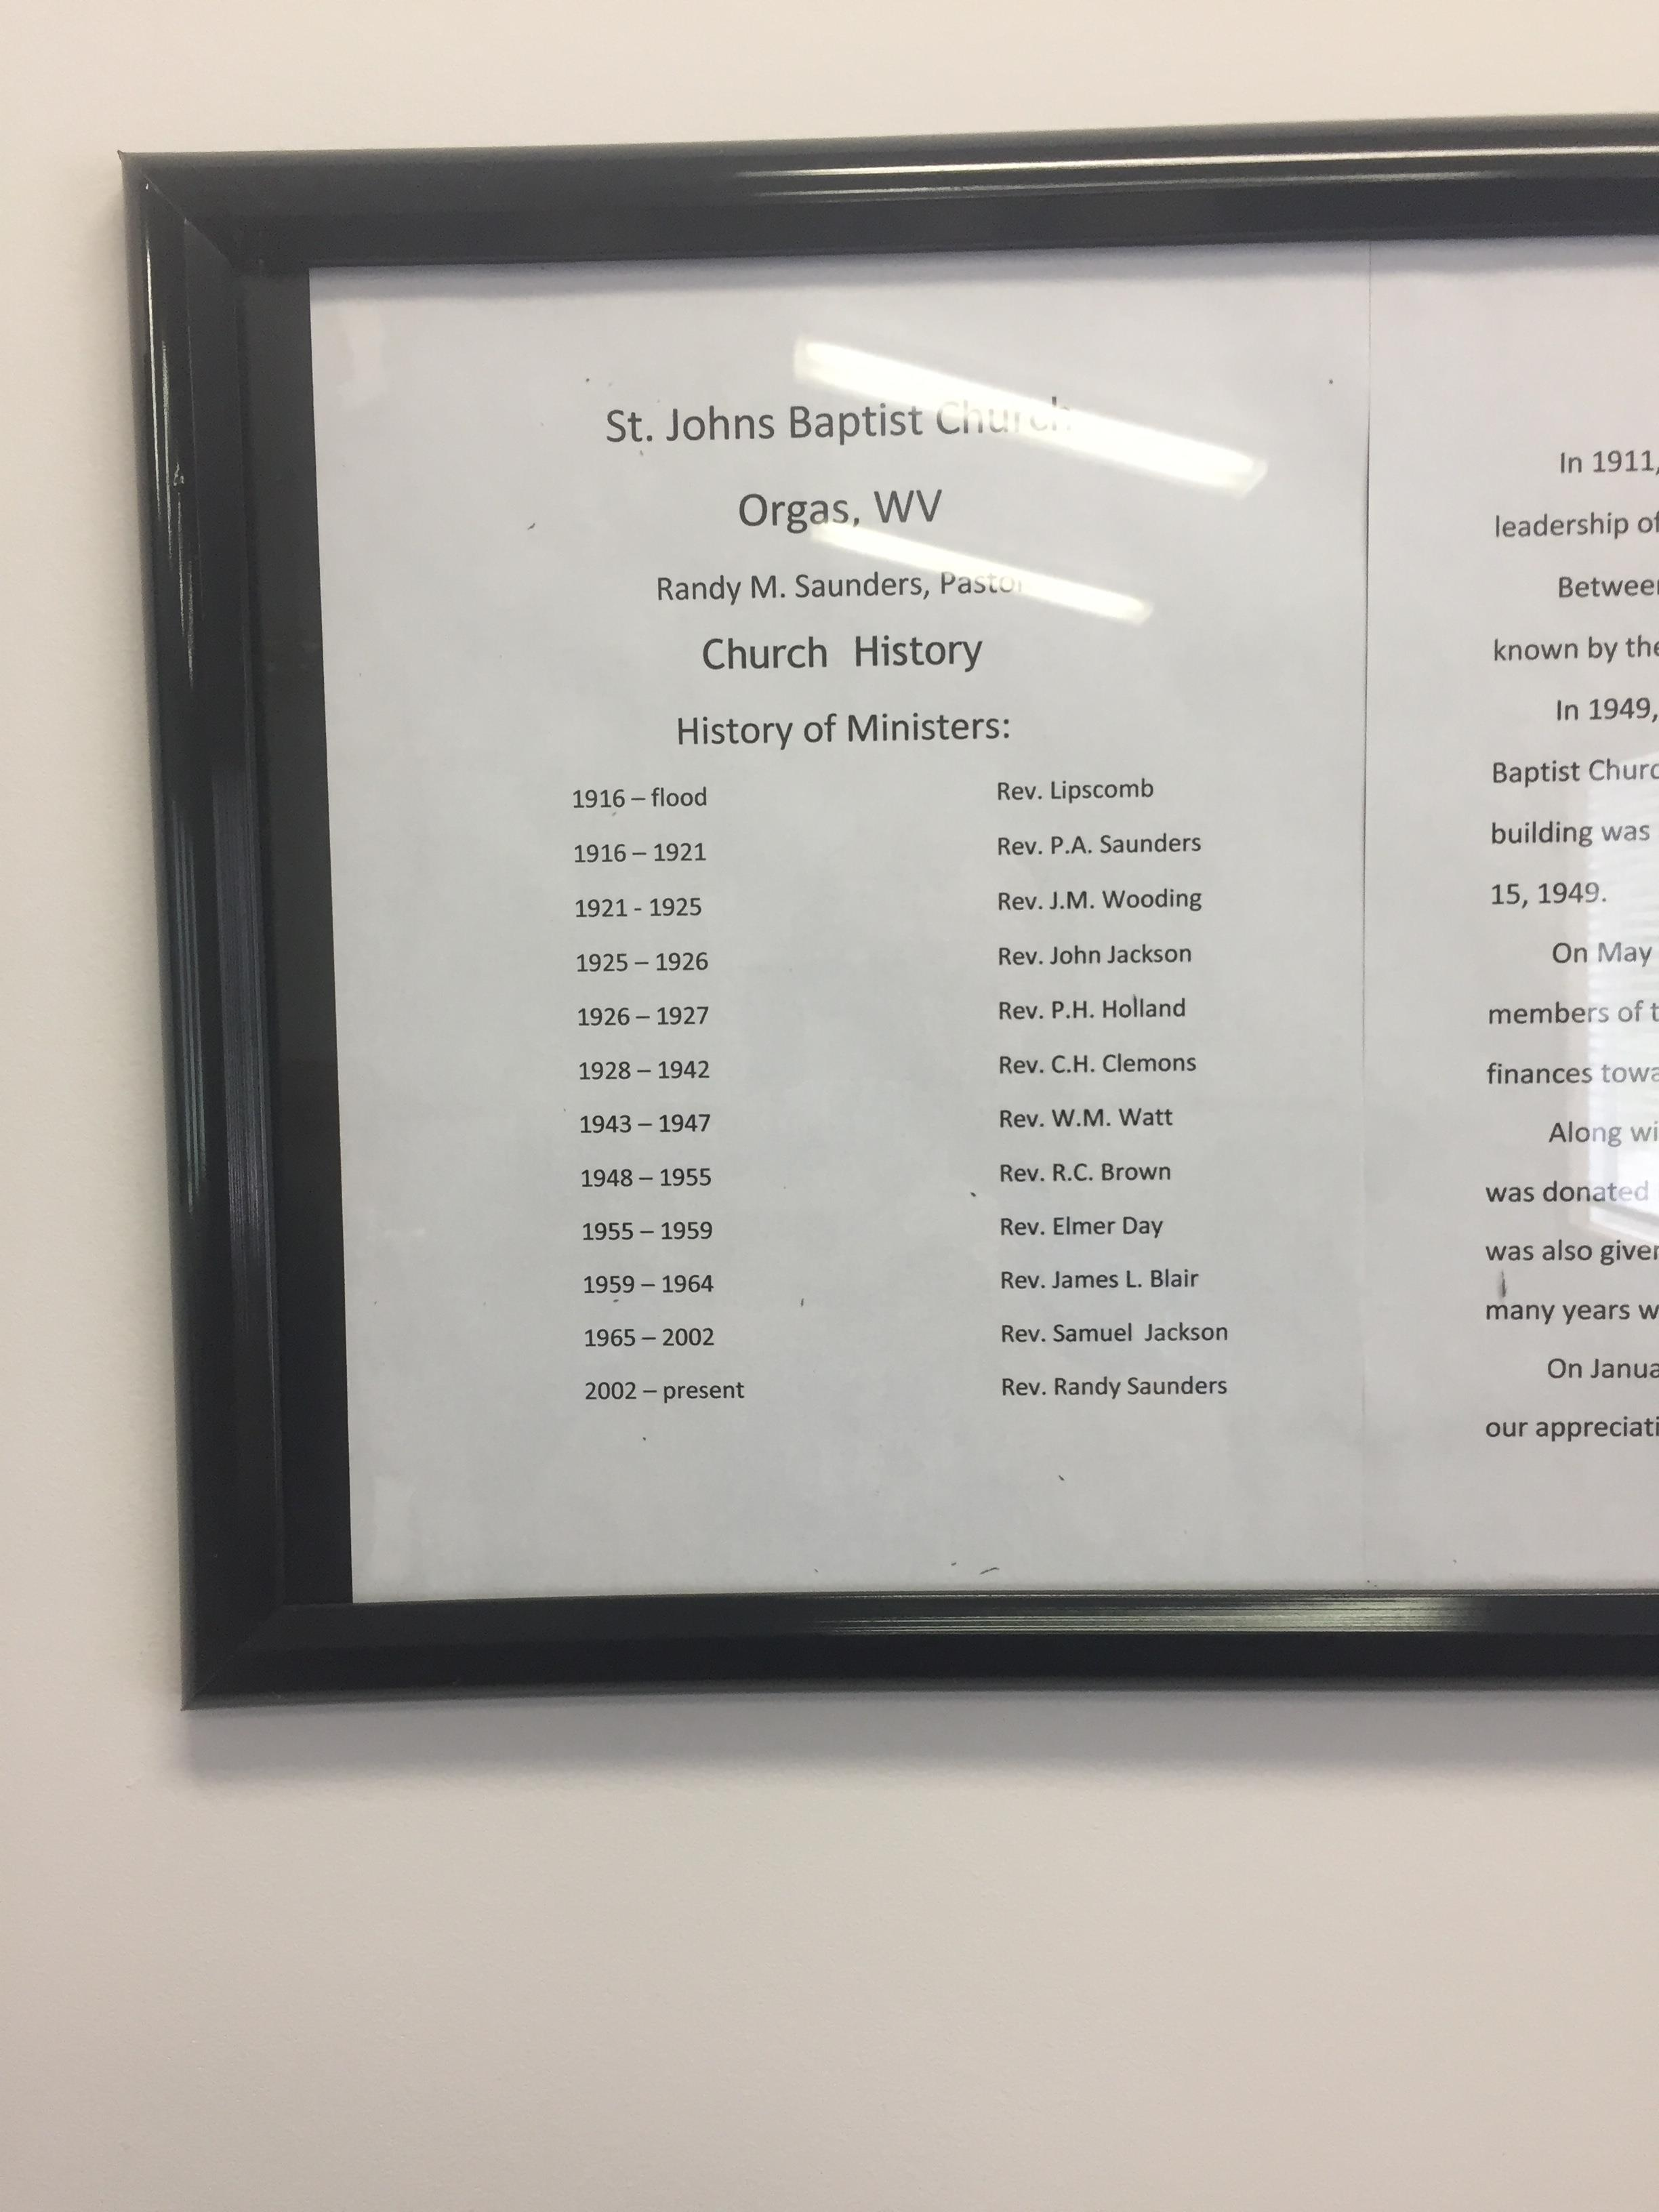 A list of ministers throughout the history of the churches, dating back to 1916.